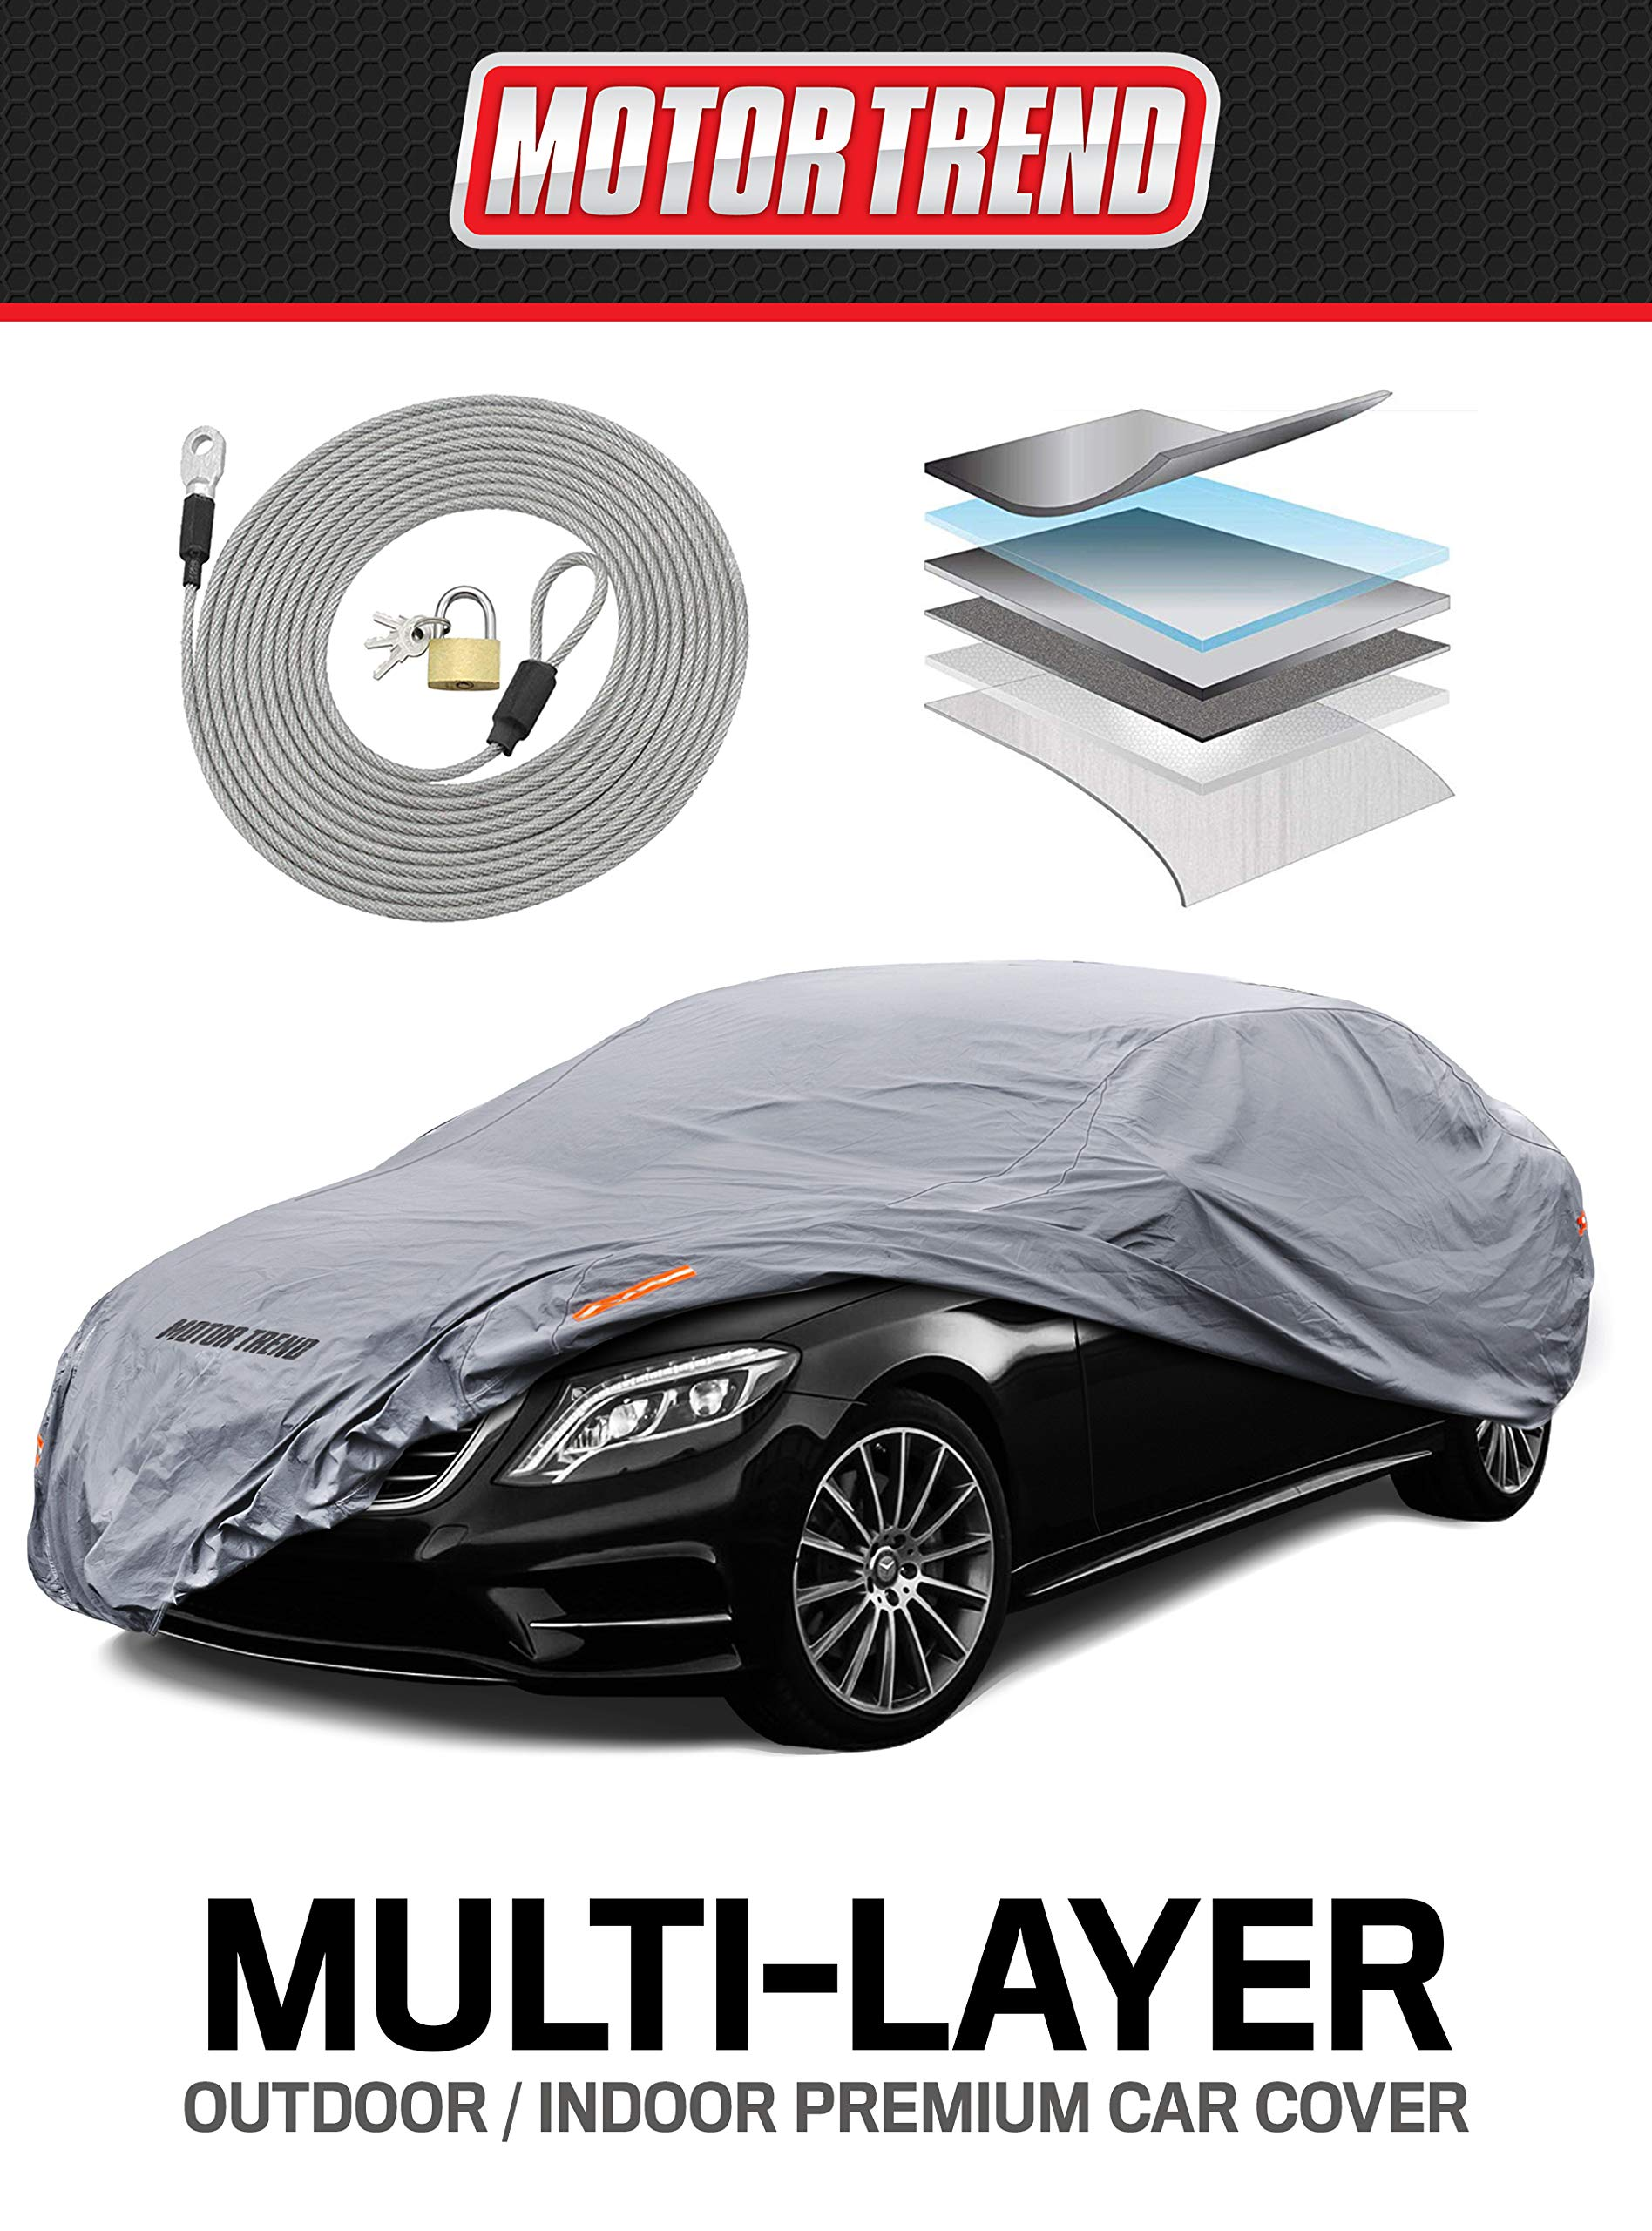 """Motor Trend M5-CC-3 L (7-Series Defender Pro-Waterproof Car Cover for All Weather-Snow, Wind, Rain & Sun-Ultra Heavy Multiple Layers-Fits Up to 190"""")"""